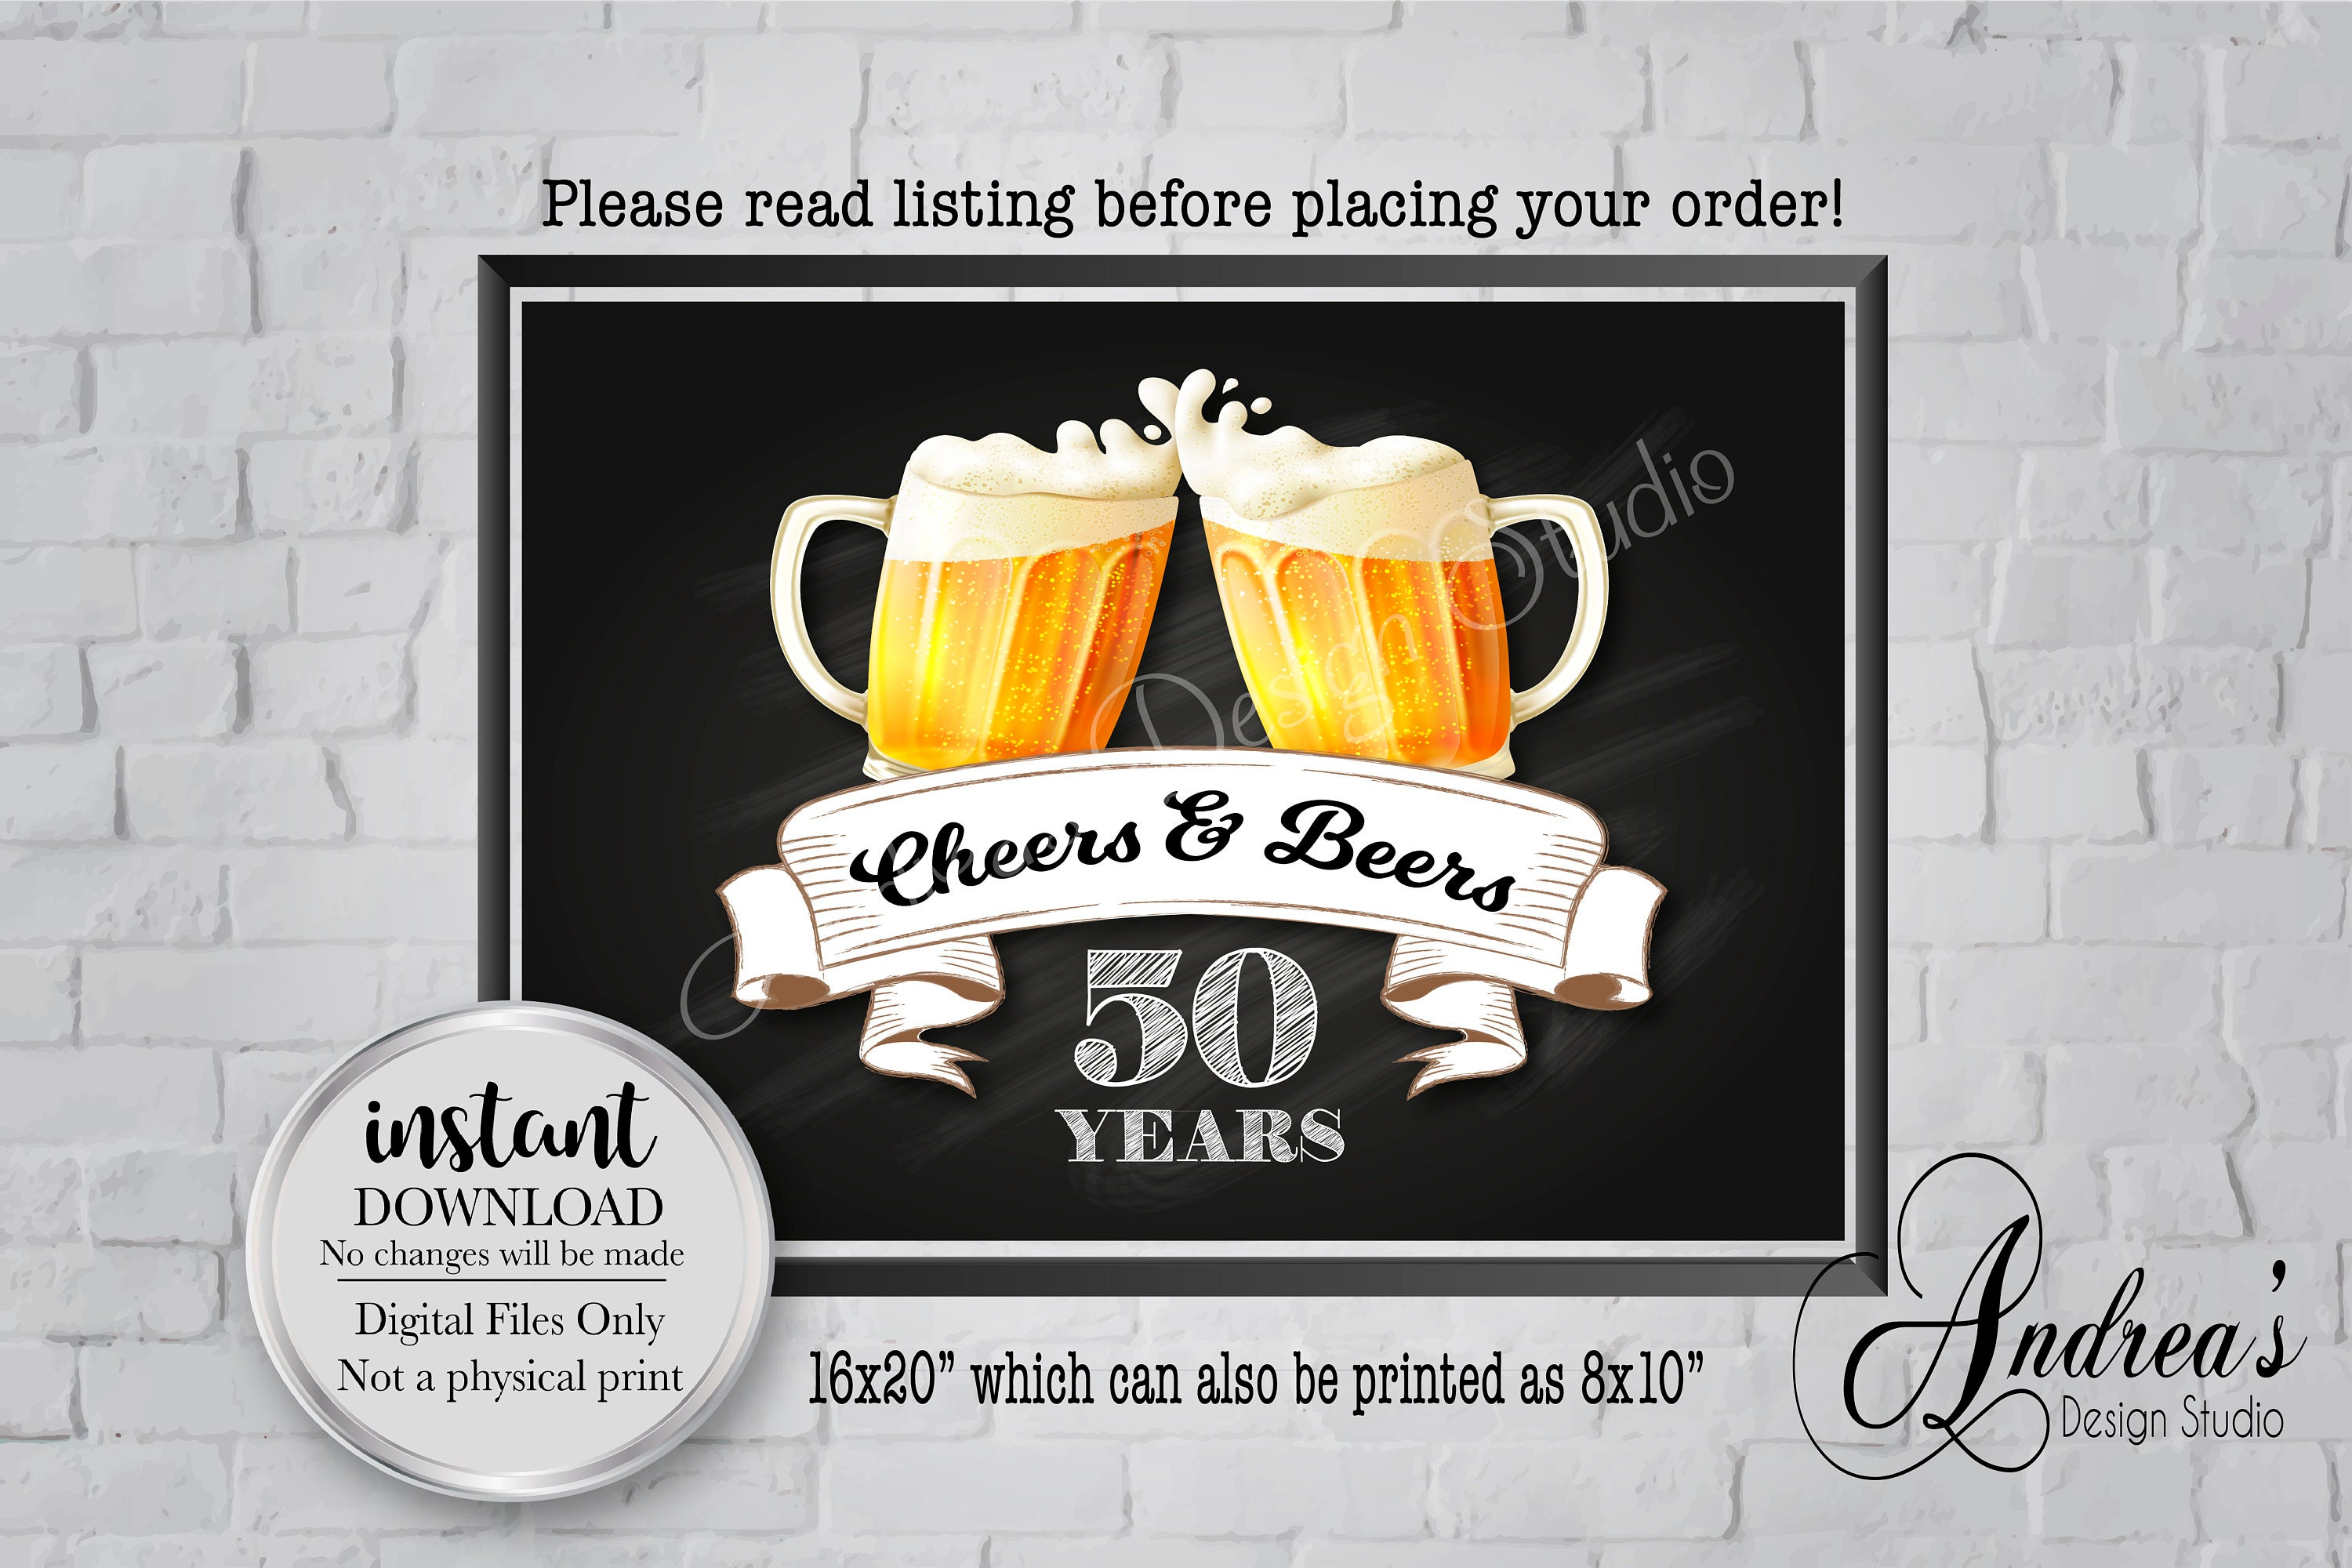 Instant Download Digital Files AnniversaryBirthday Decor 8x1016x20 Cheers and Beers Sign Birthday Cheers and Beers